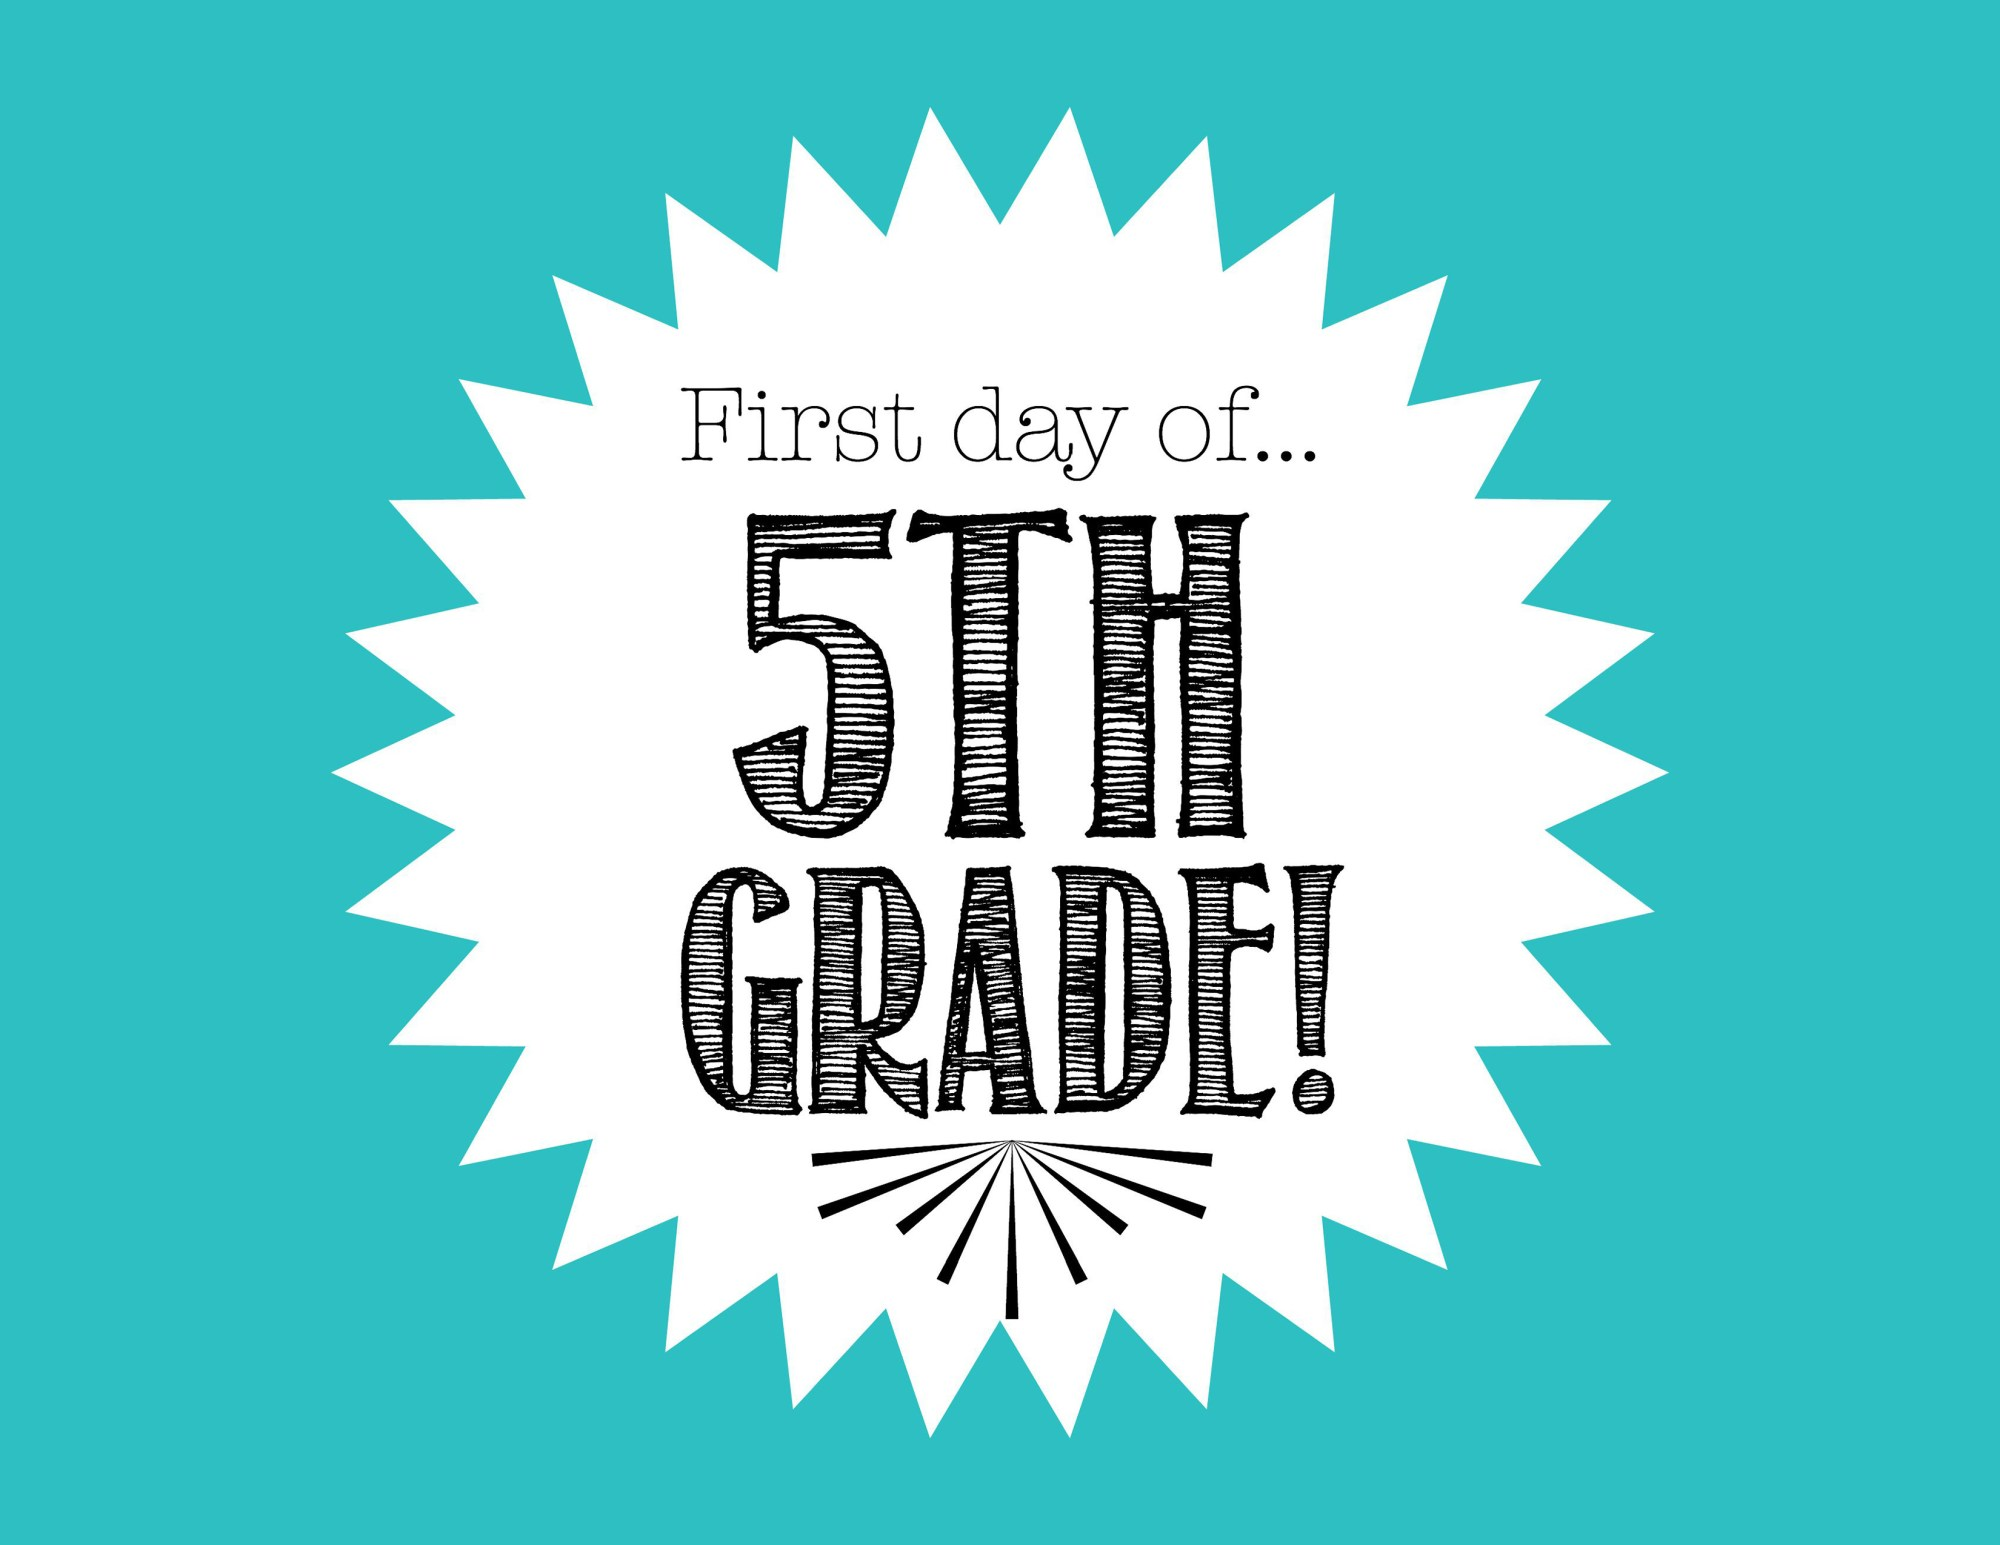 hight resolution of Free First Day of School Printables